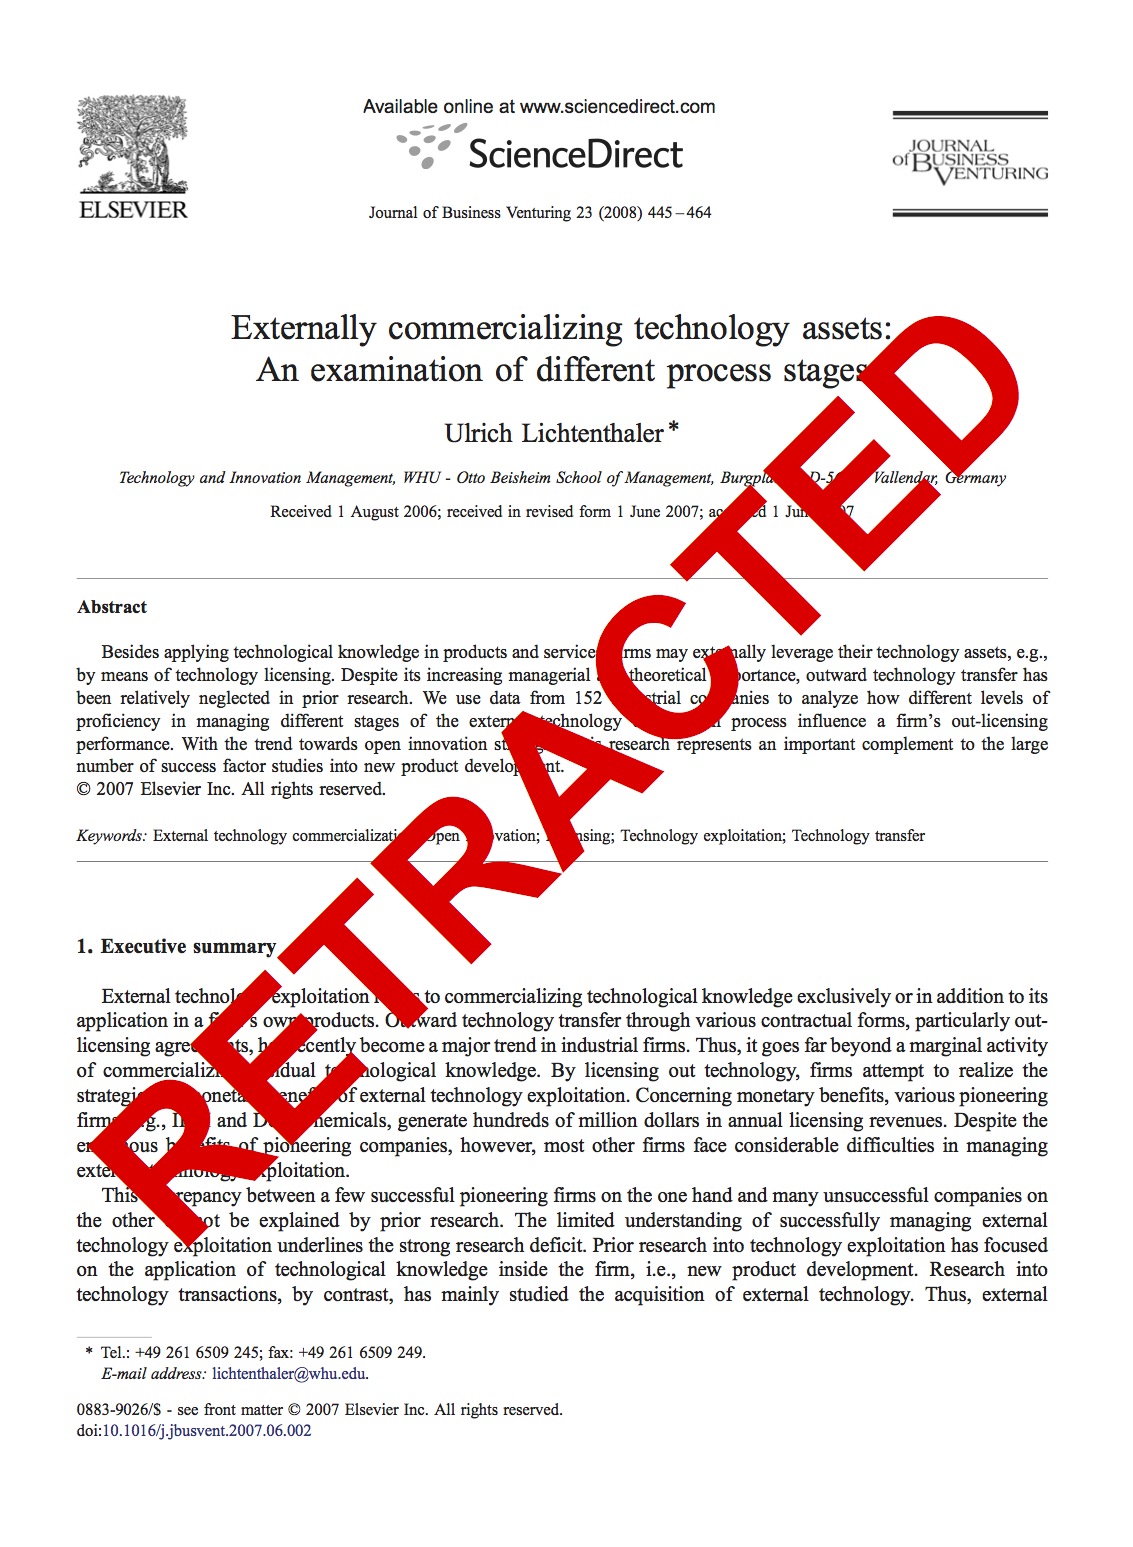 008 Research Paper 2010jbv Lichtenthalerretracted Can You Buy Amazing Papers Full